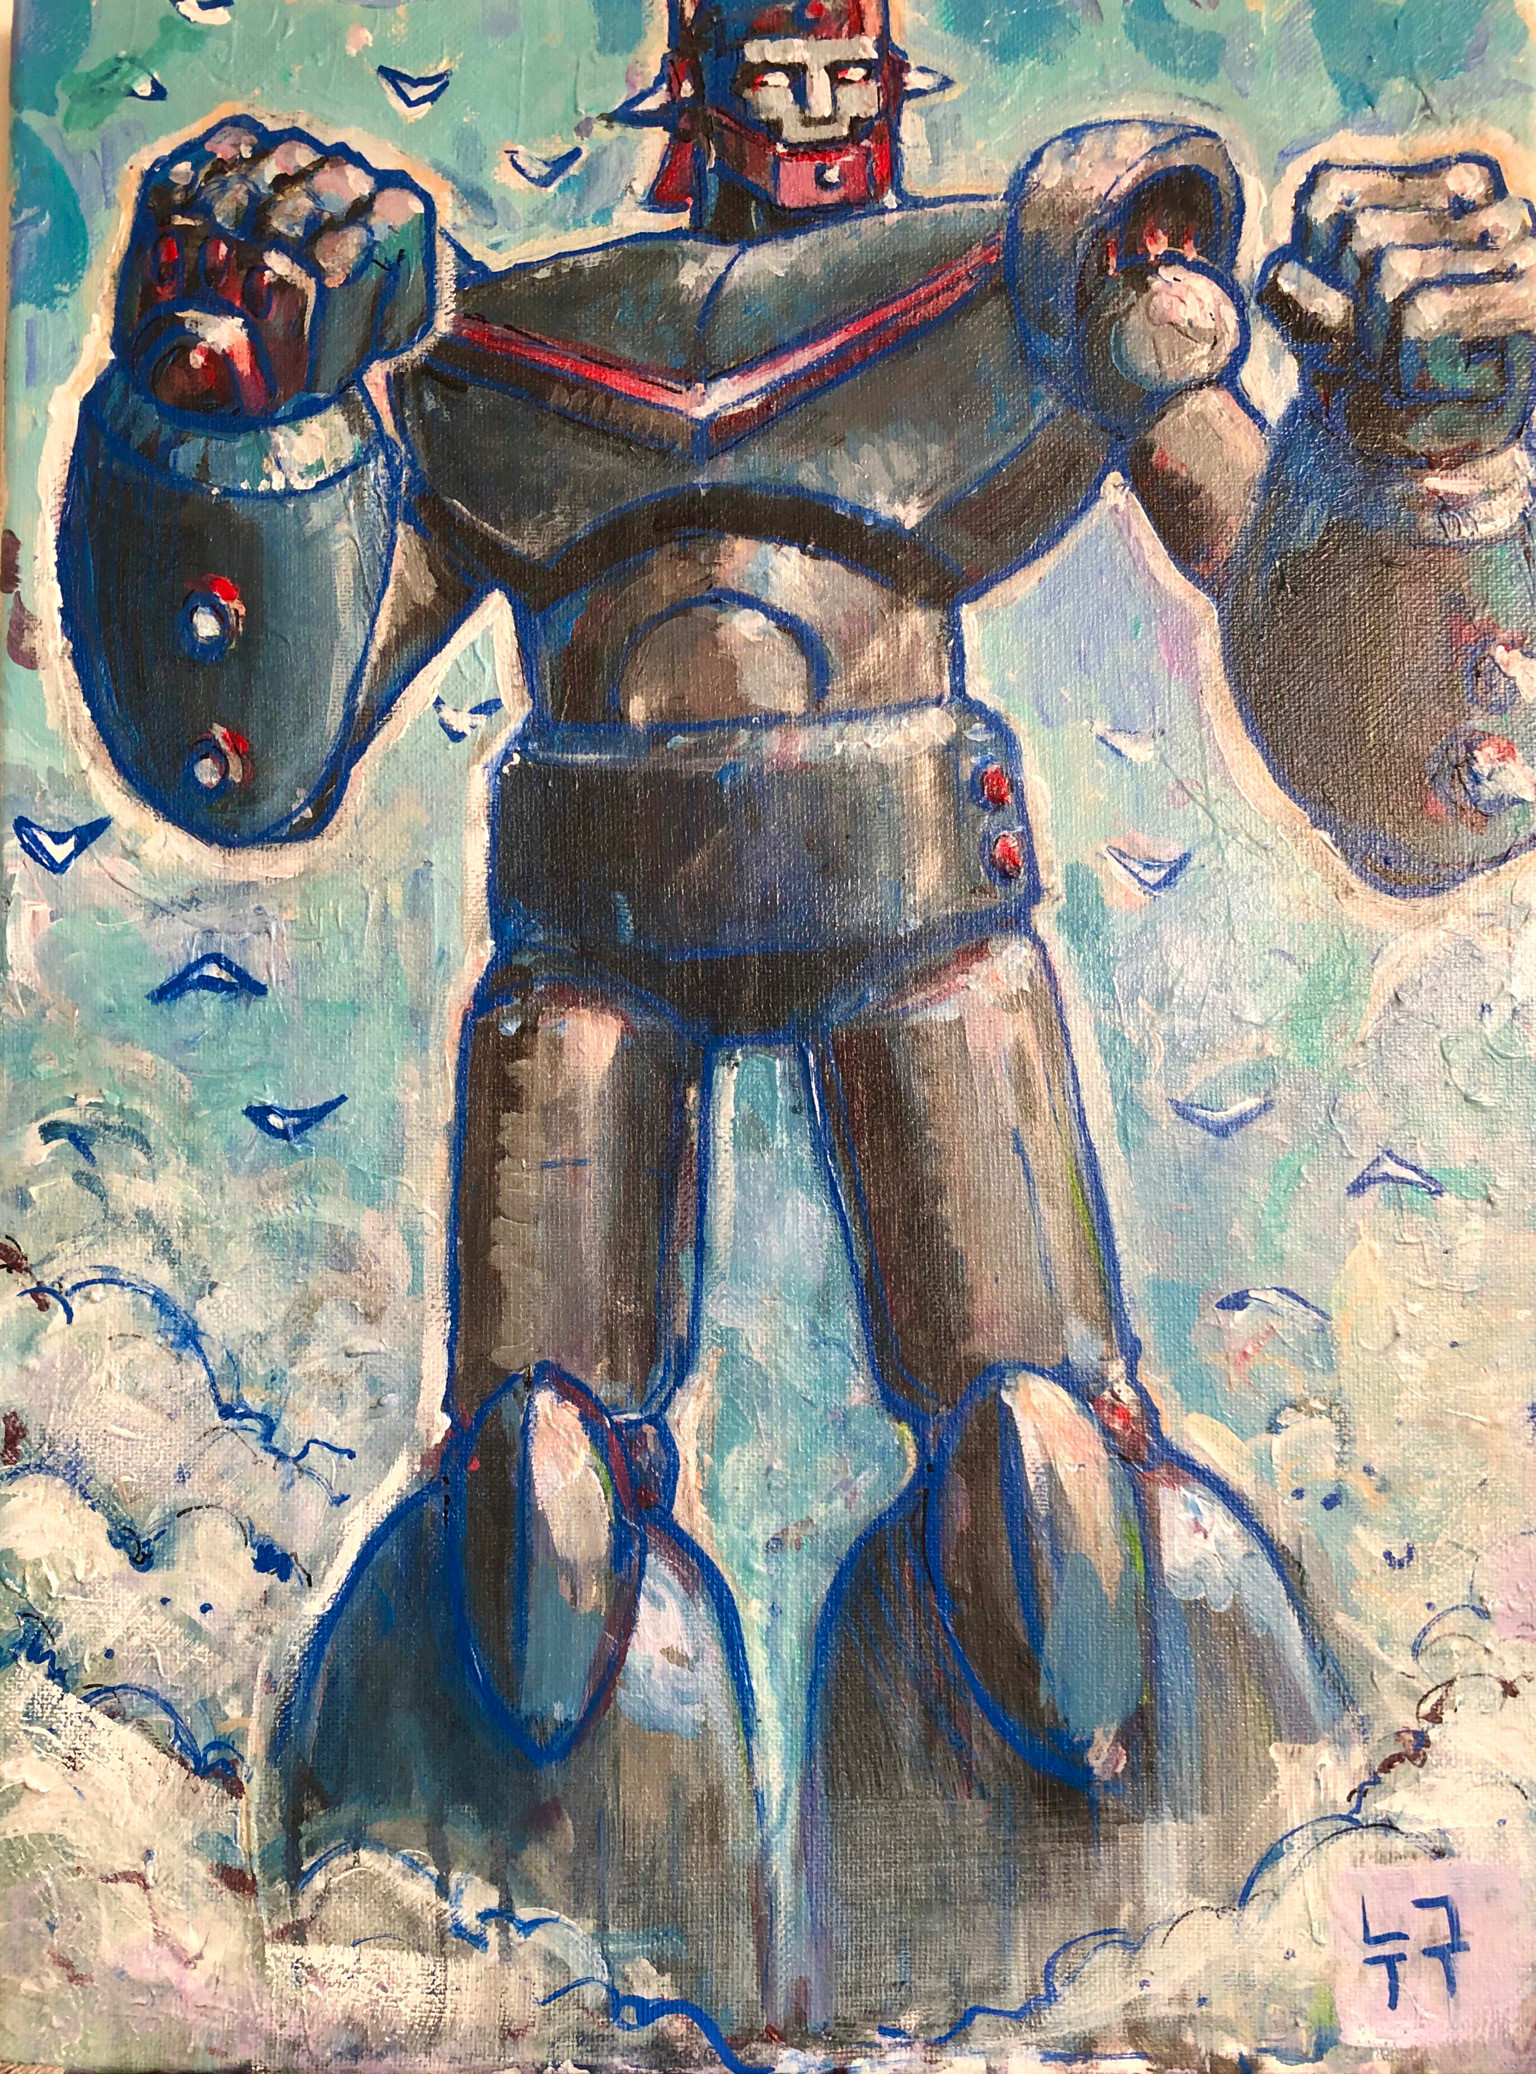 RTV. acrylic on canvas (Korea)